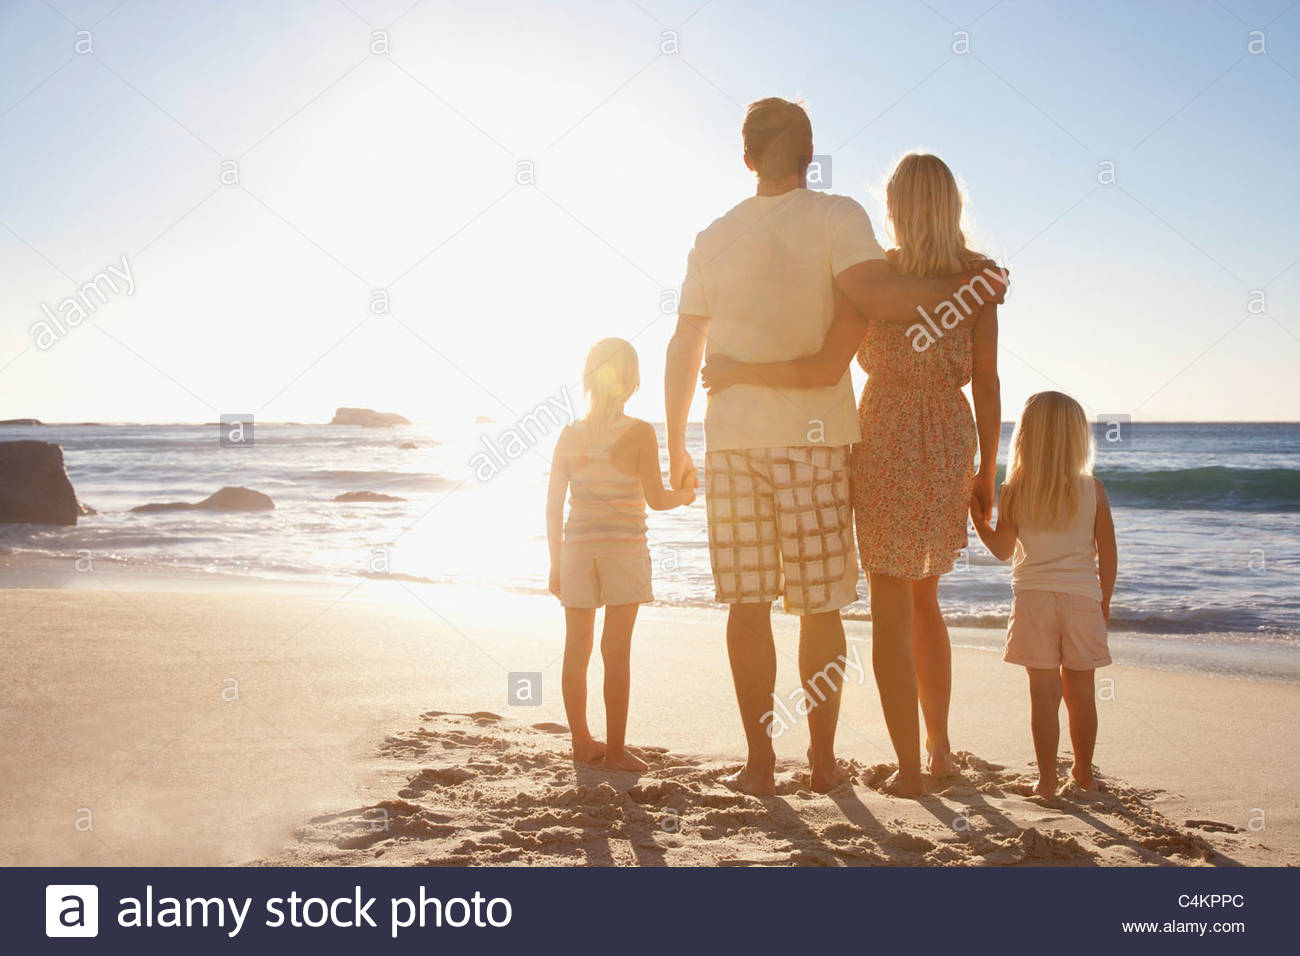 Family on beach holding hands - Stock Image